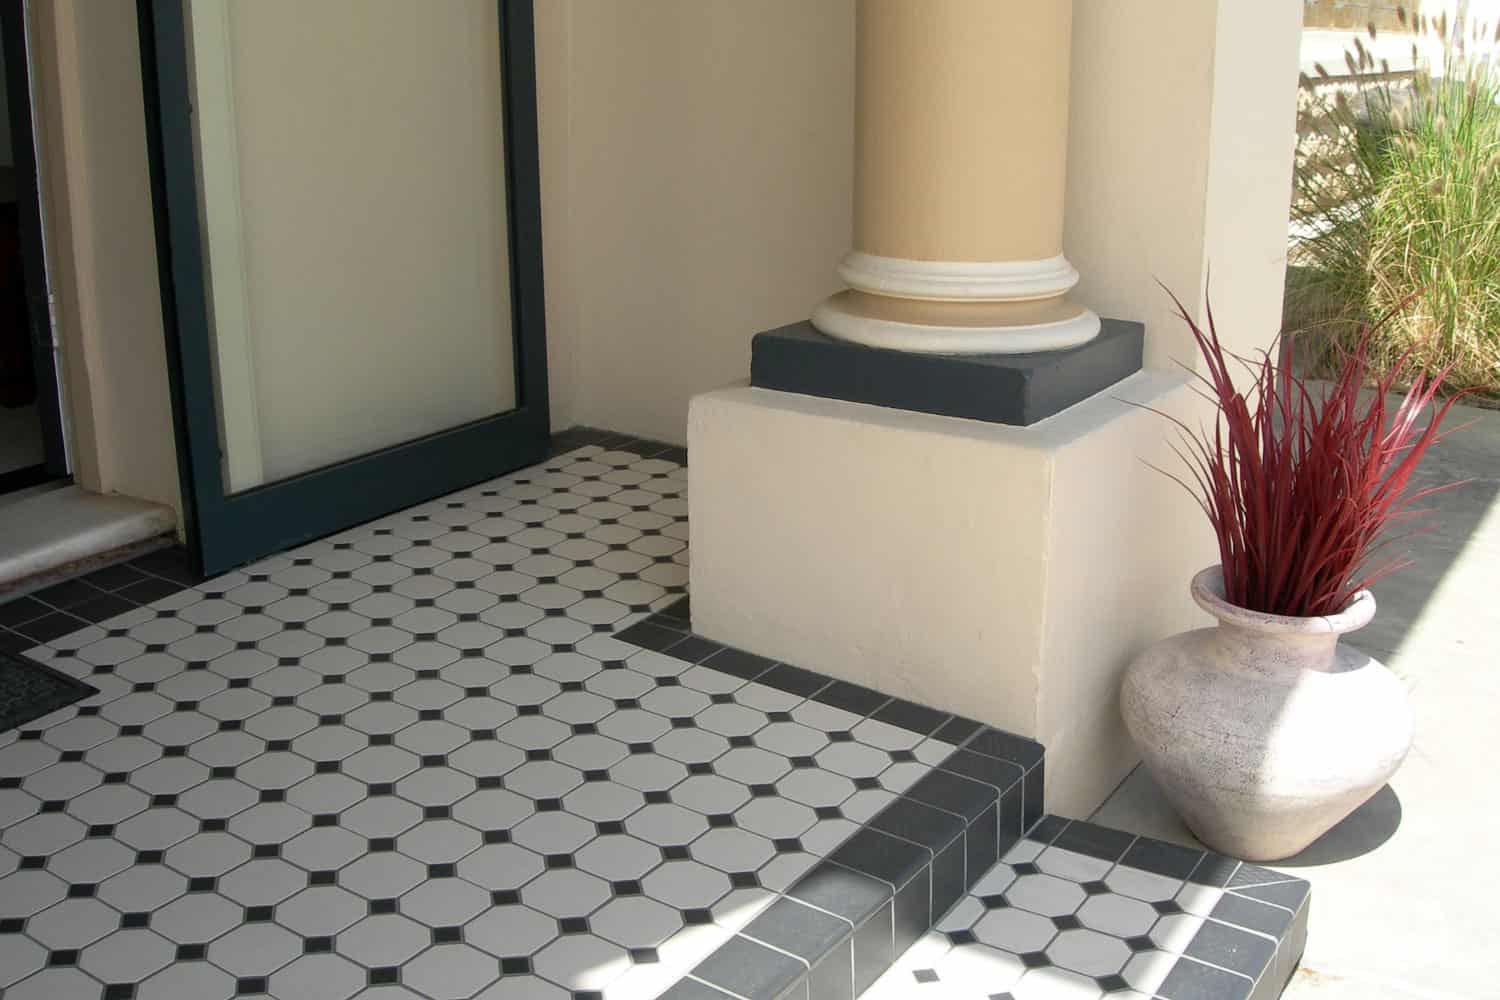 An entryway of a small contemporary house with a tiled front porch